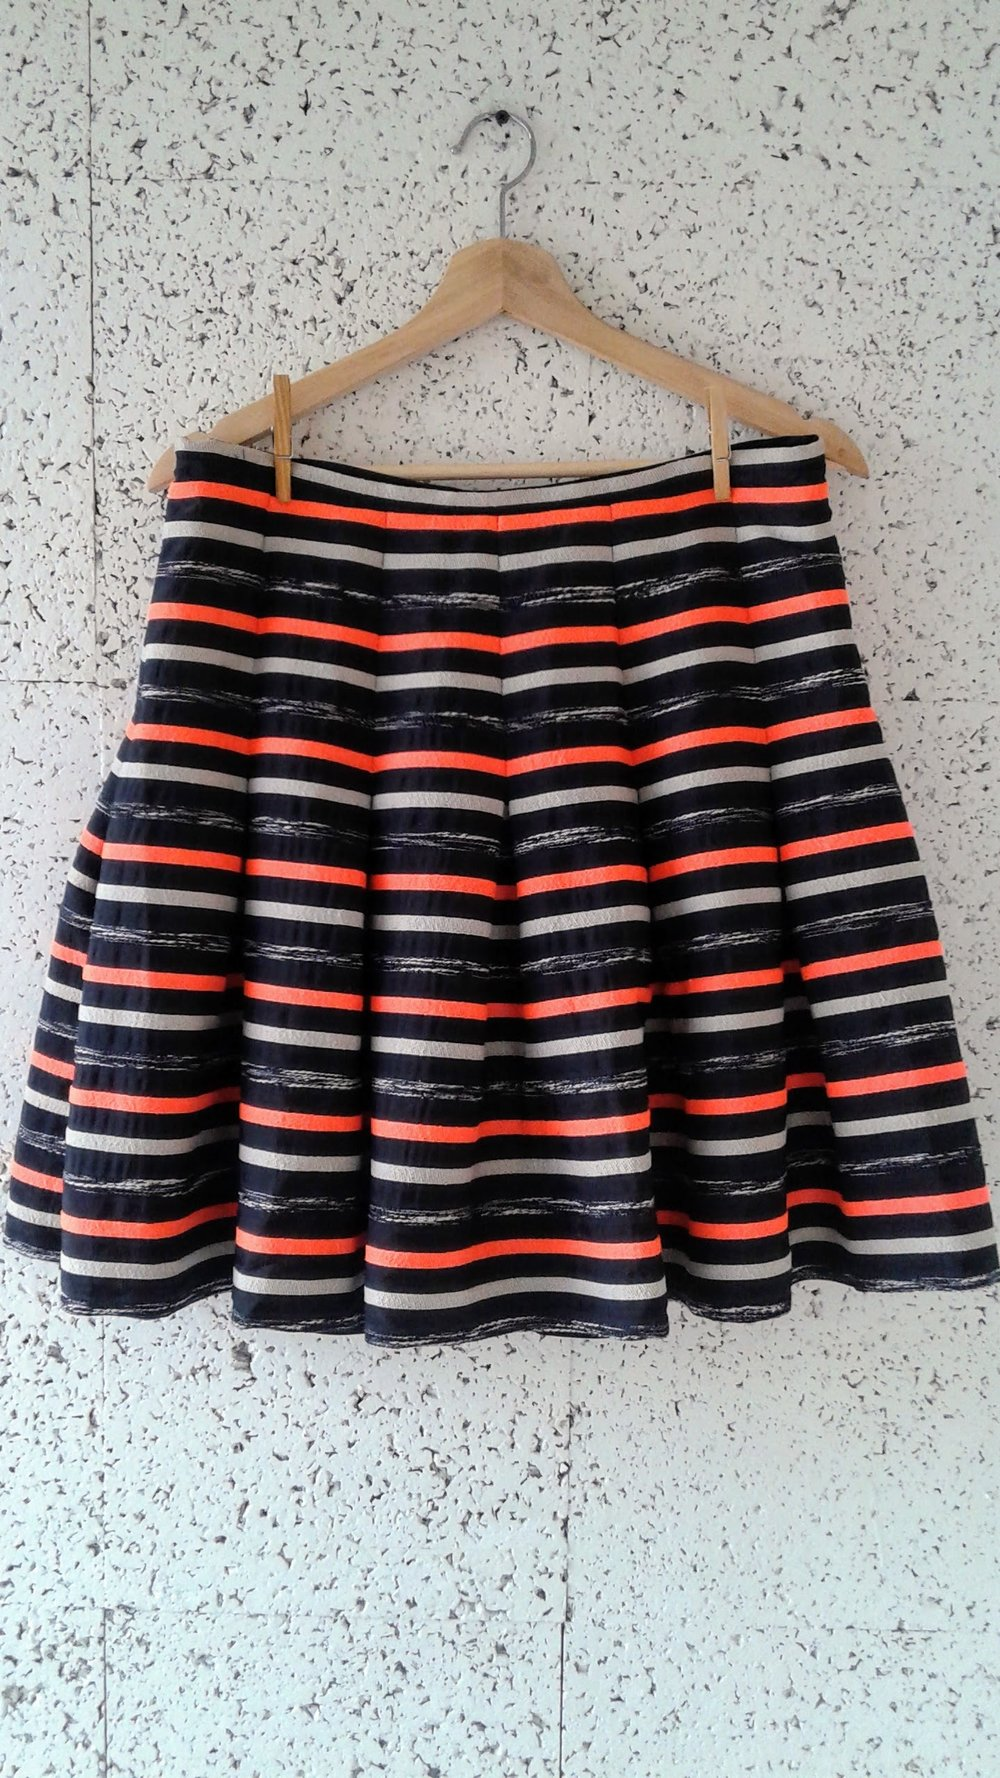 HD Paris skirt; Size 12, $26